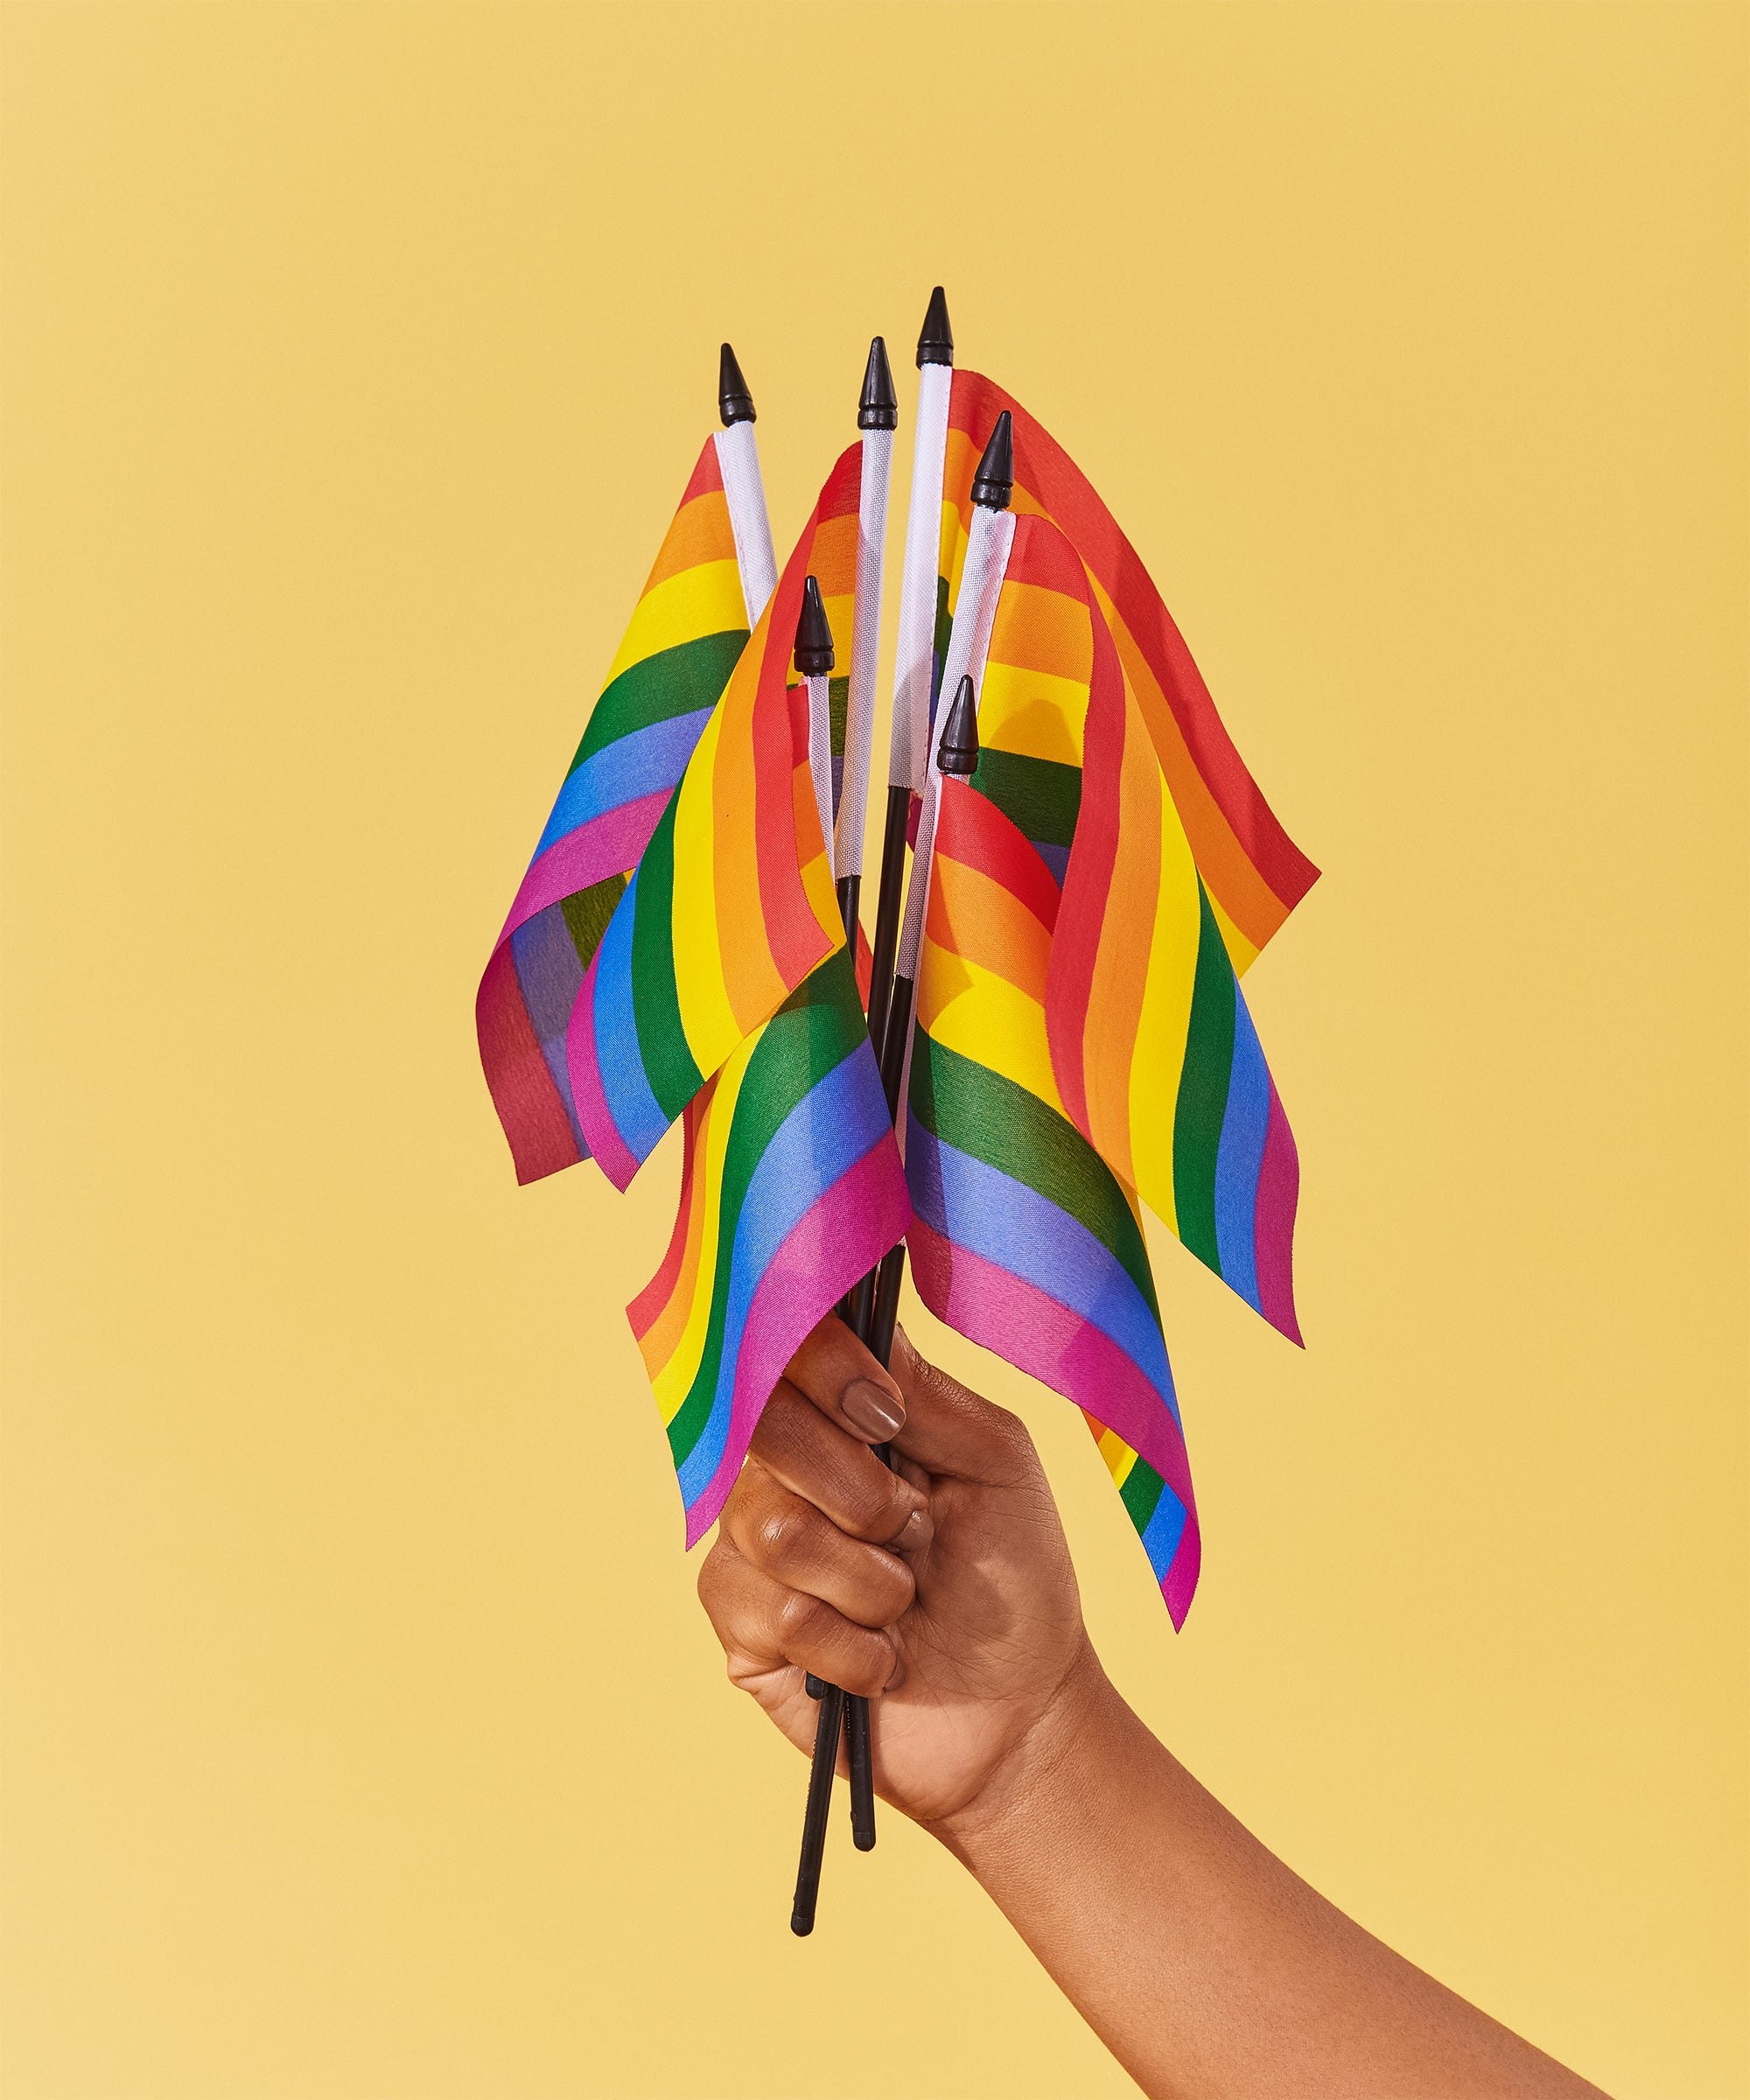 How To Celebrate Pride In A Place Where You Can't